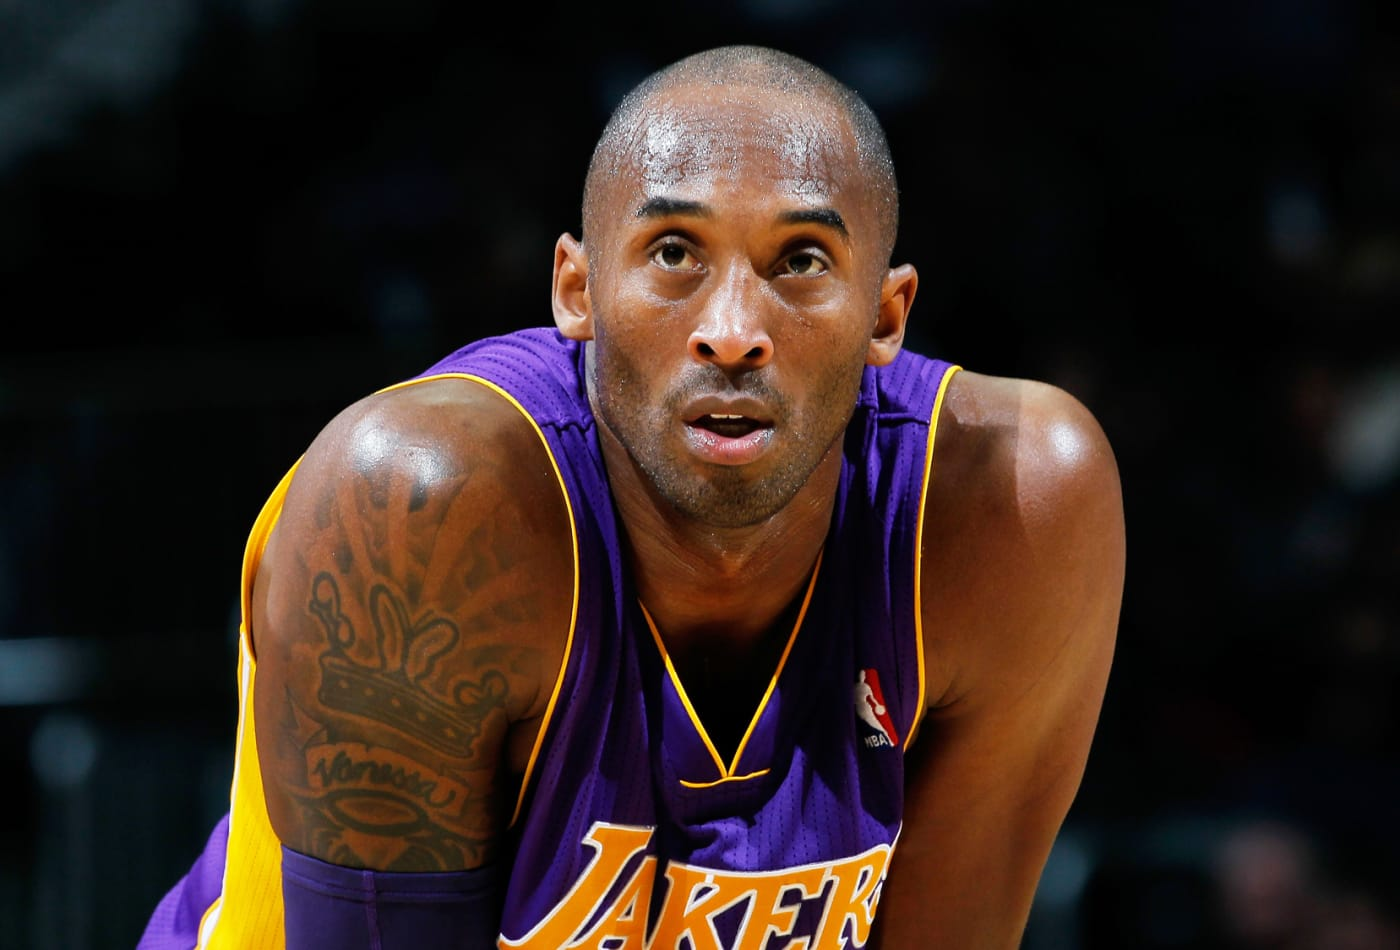 TMZ Is Shockingly Reporting That Kobe Bryant Has Died in a Helicopter Crash